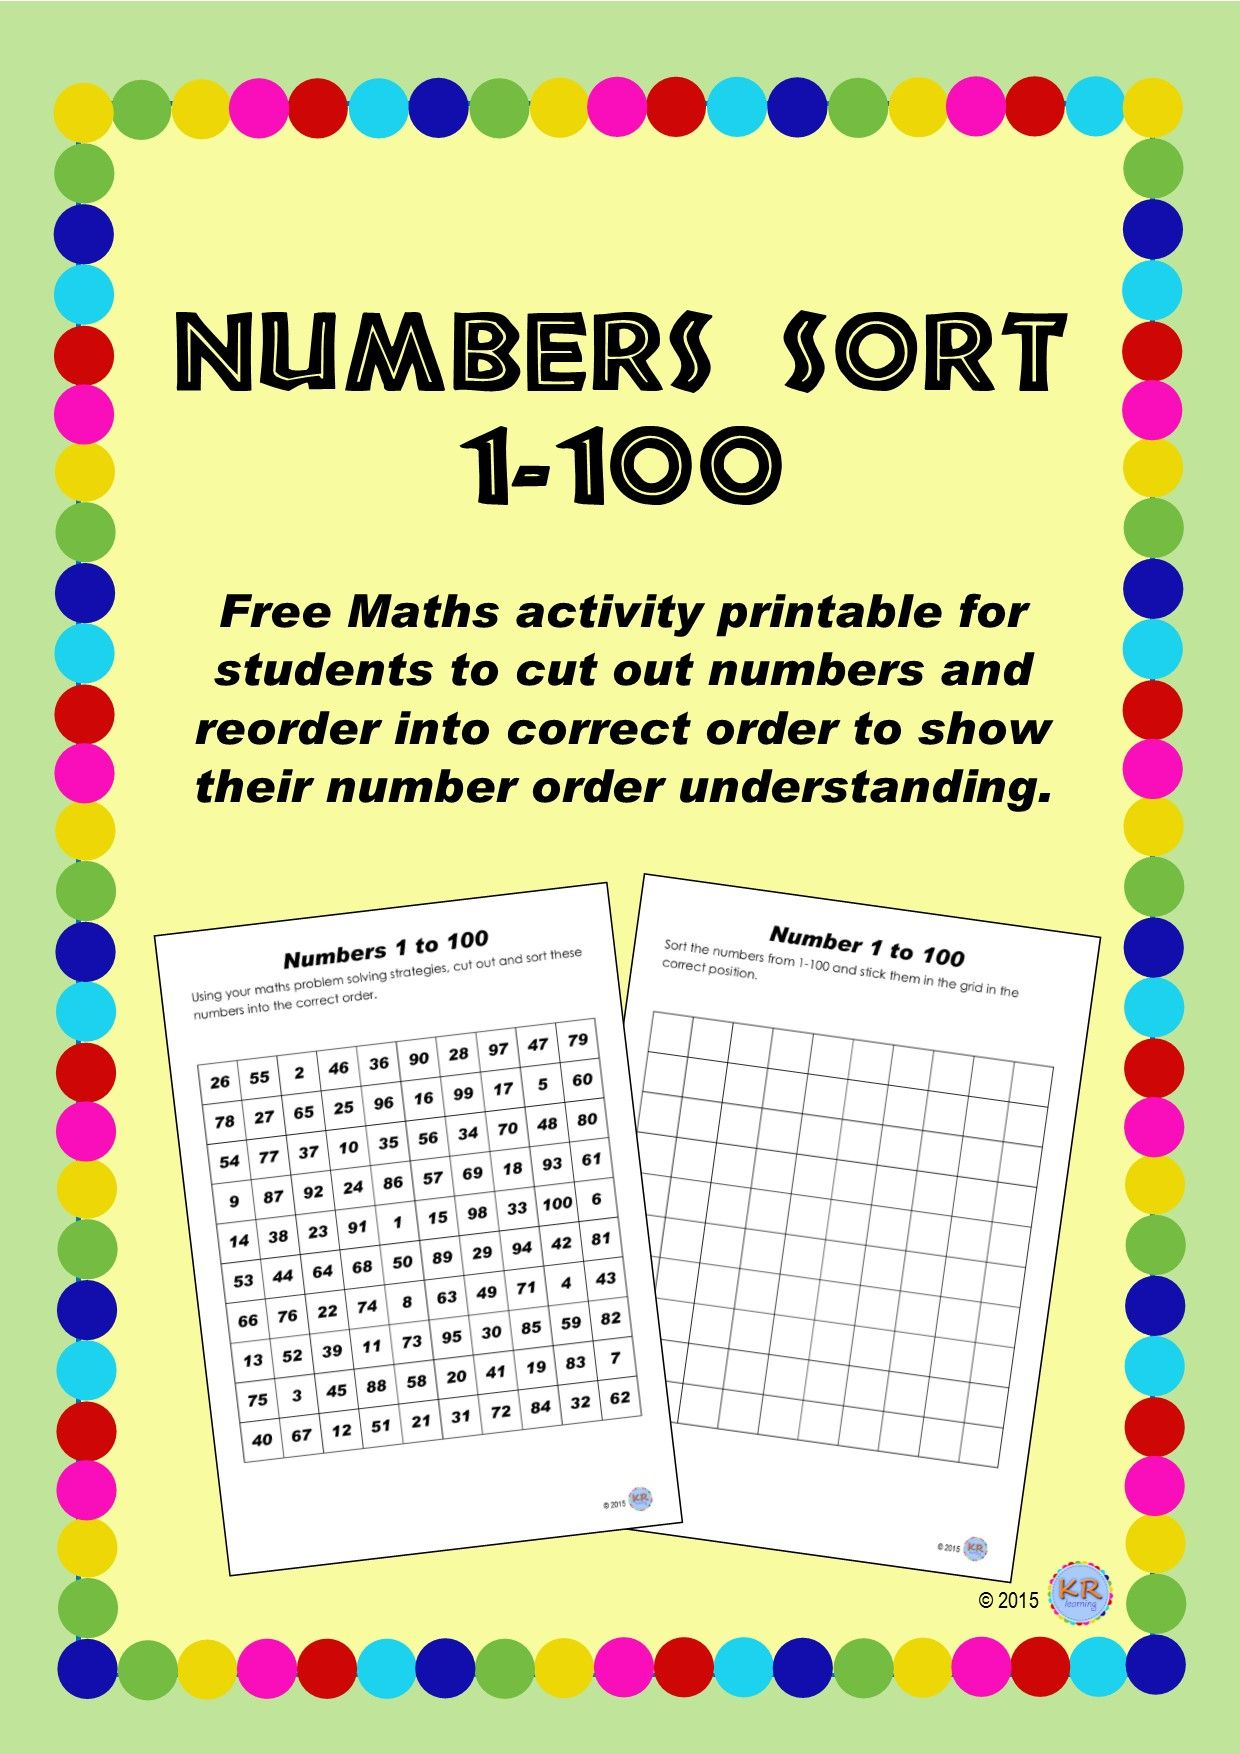 Number Sort Problem Solving Activity 1 100 Random Page Of Numbers For Students To Sort And Show Problem Solving Activities Free Math Activity Problem Solving